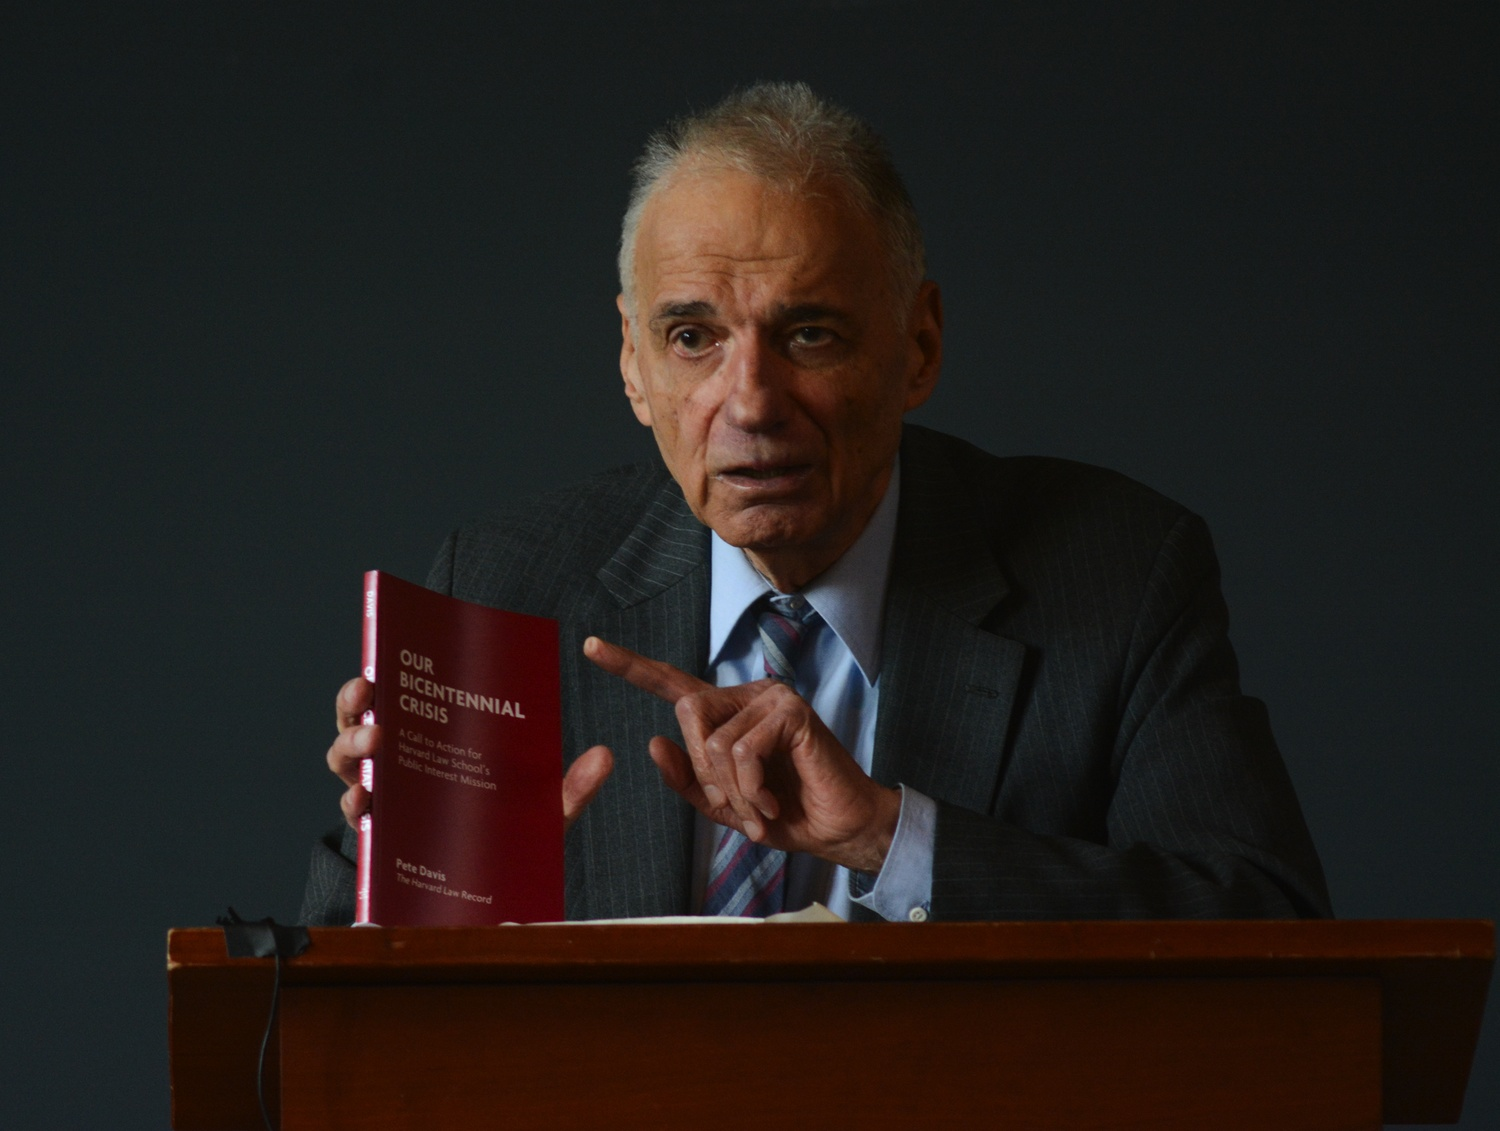 "Repeat presidential candidate Ralph Nader discusses ""Our Bicentennial Crisis,"" a recent publication by Law student Pete Davis. Nader was critical of the school's practices during his talk in Langdell Hall in November."